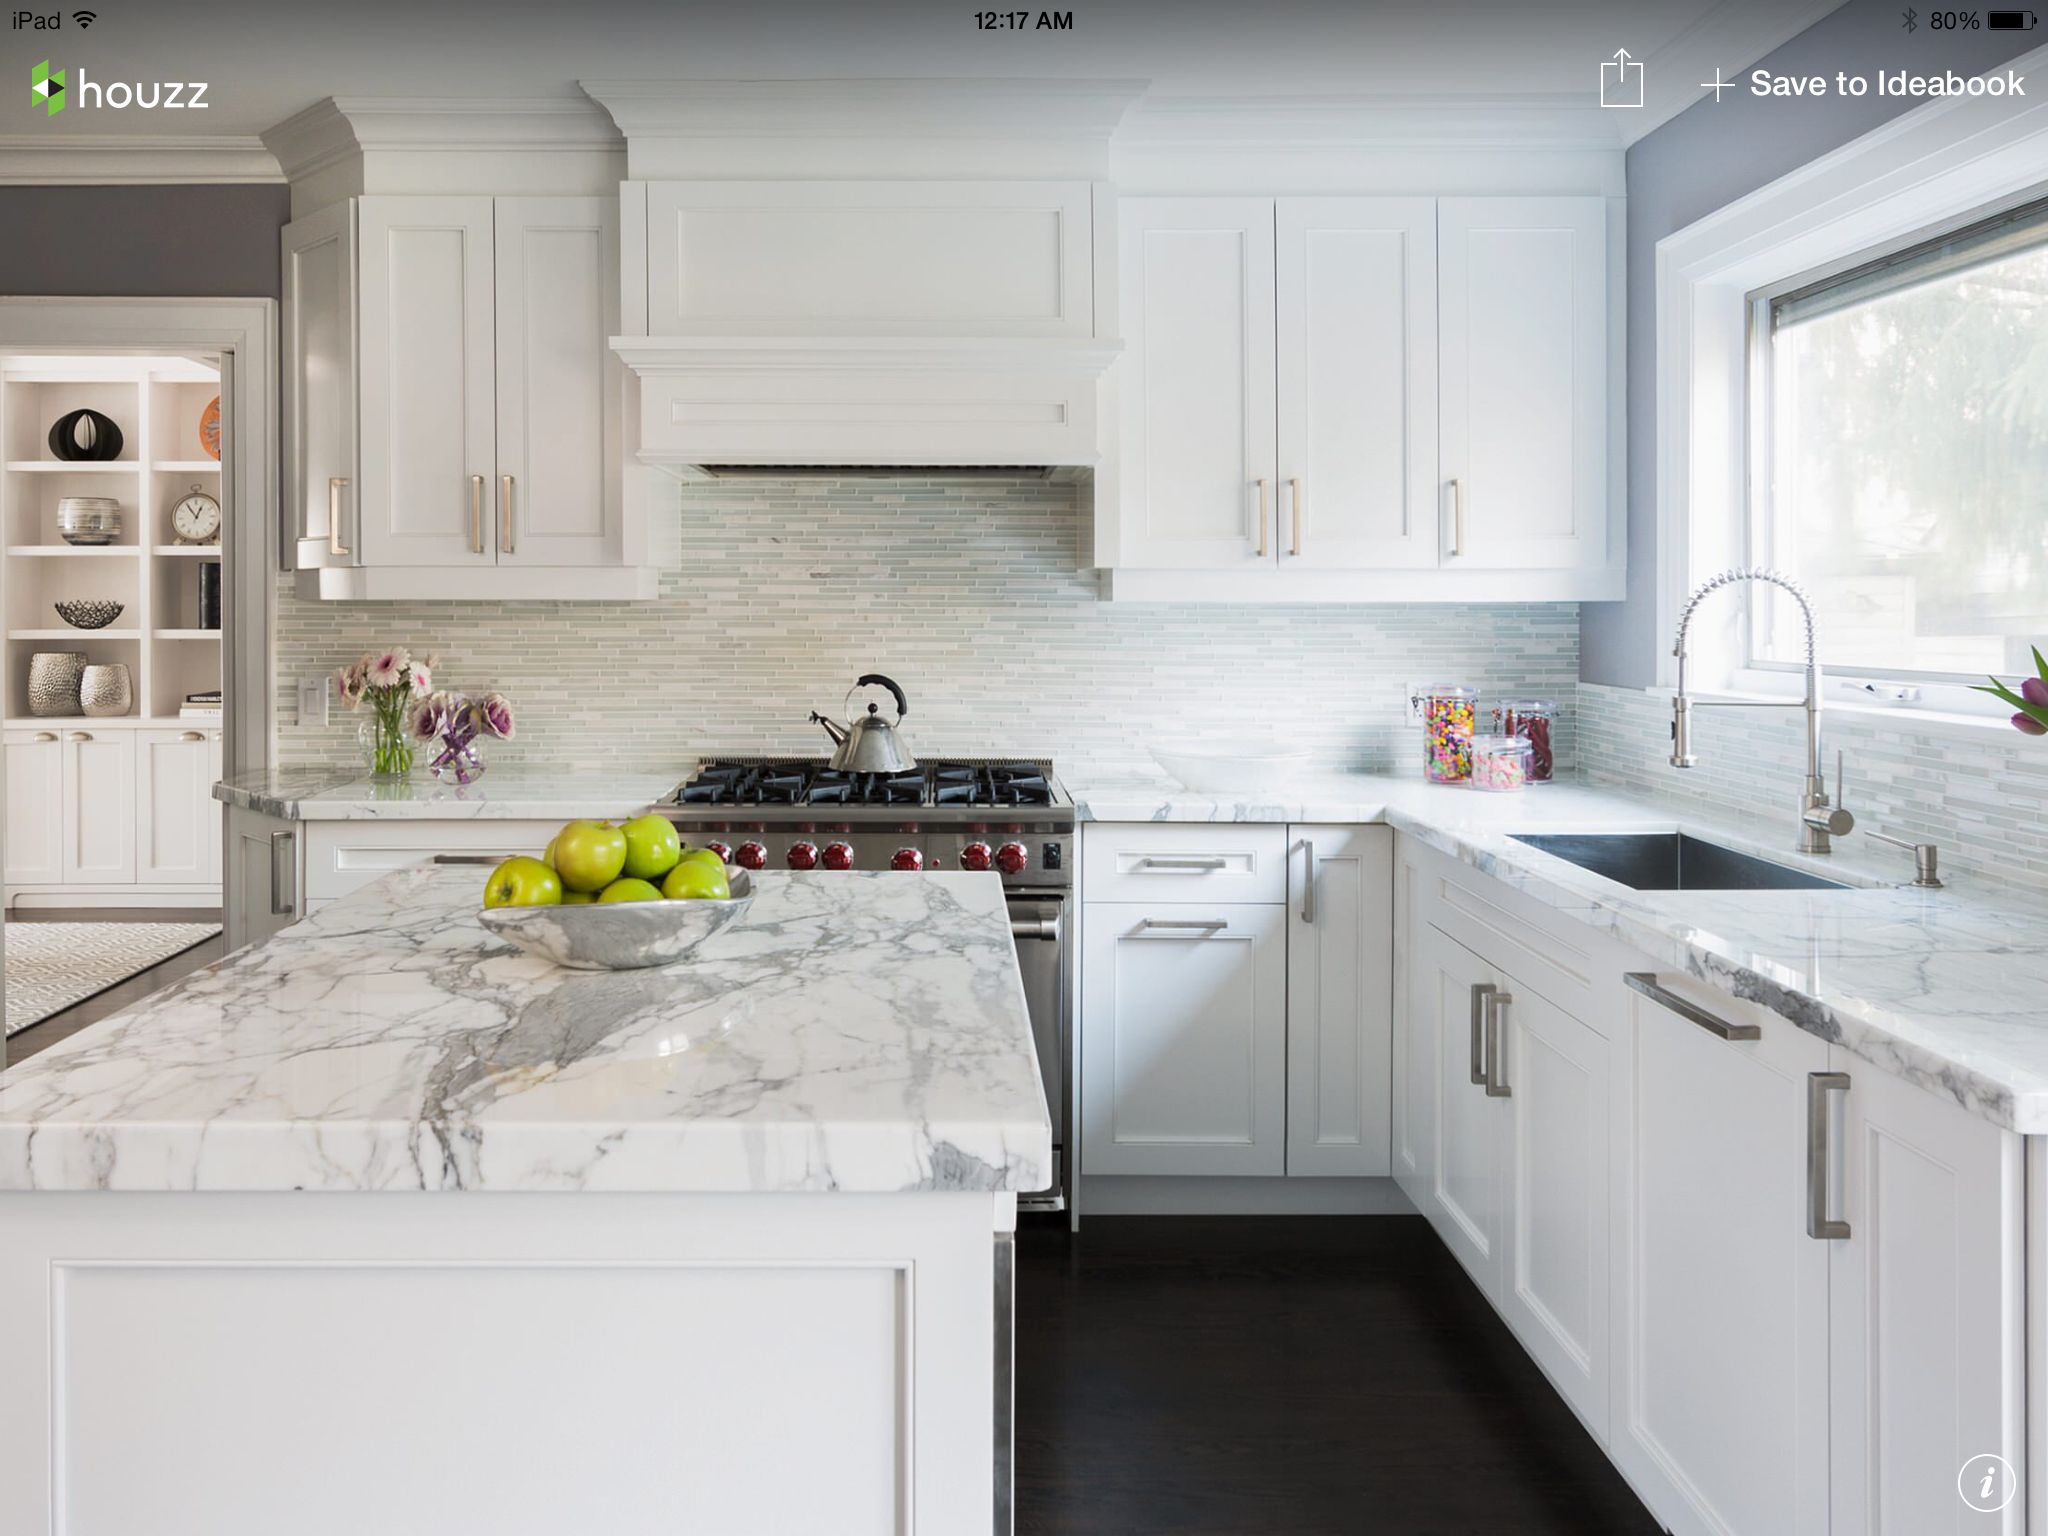 White kitchen houzz kitchen remodel pinterest houzz for Kitchen backsplash images on houzz